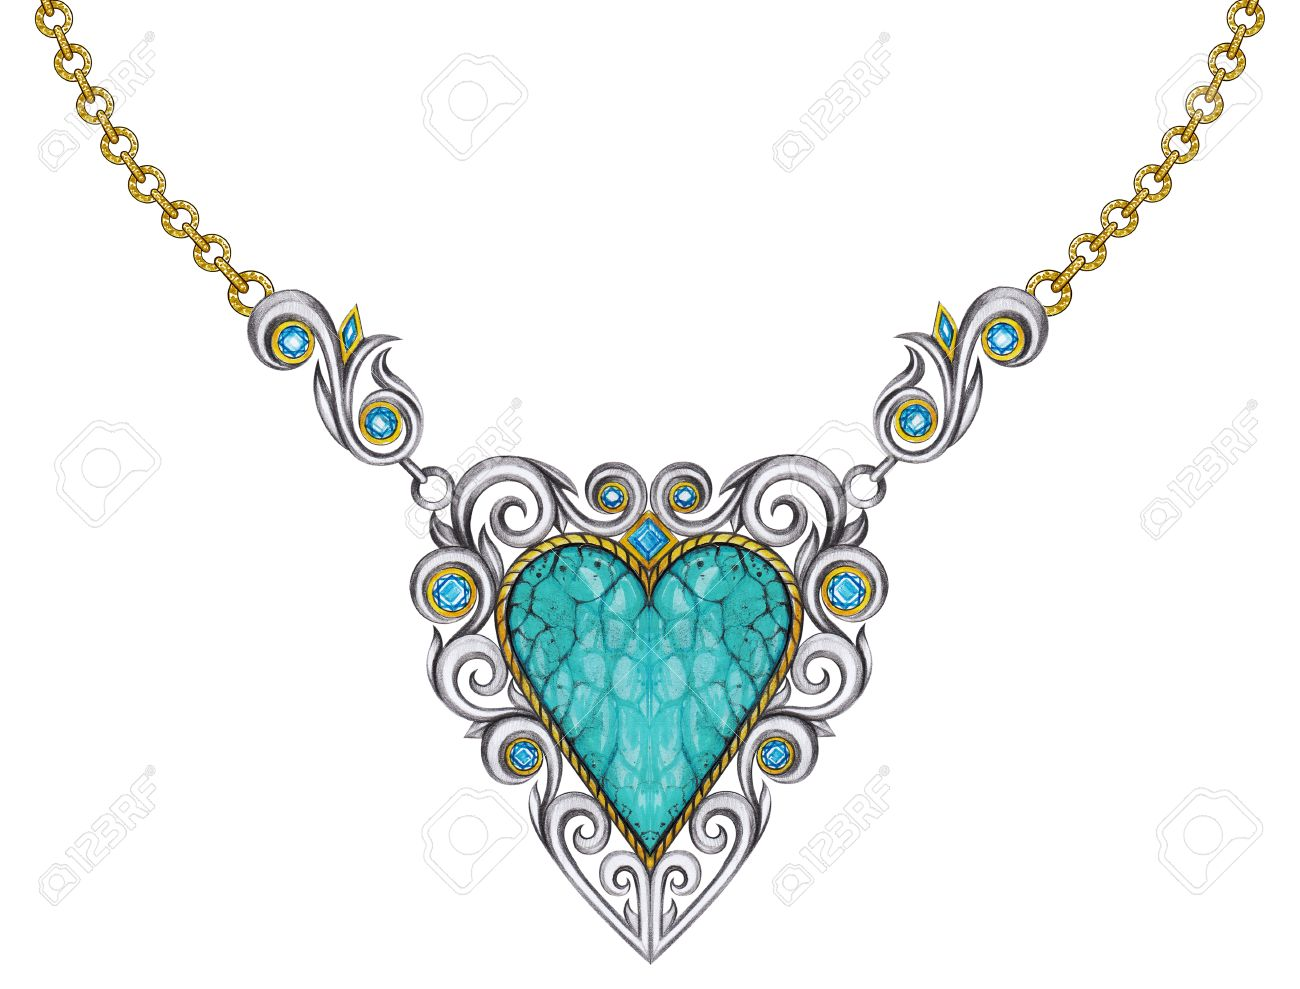 1300x989 Jewelry Design Vintage Art Mix Heart Necklace. Hand Pencil Drawing